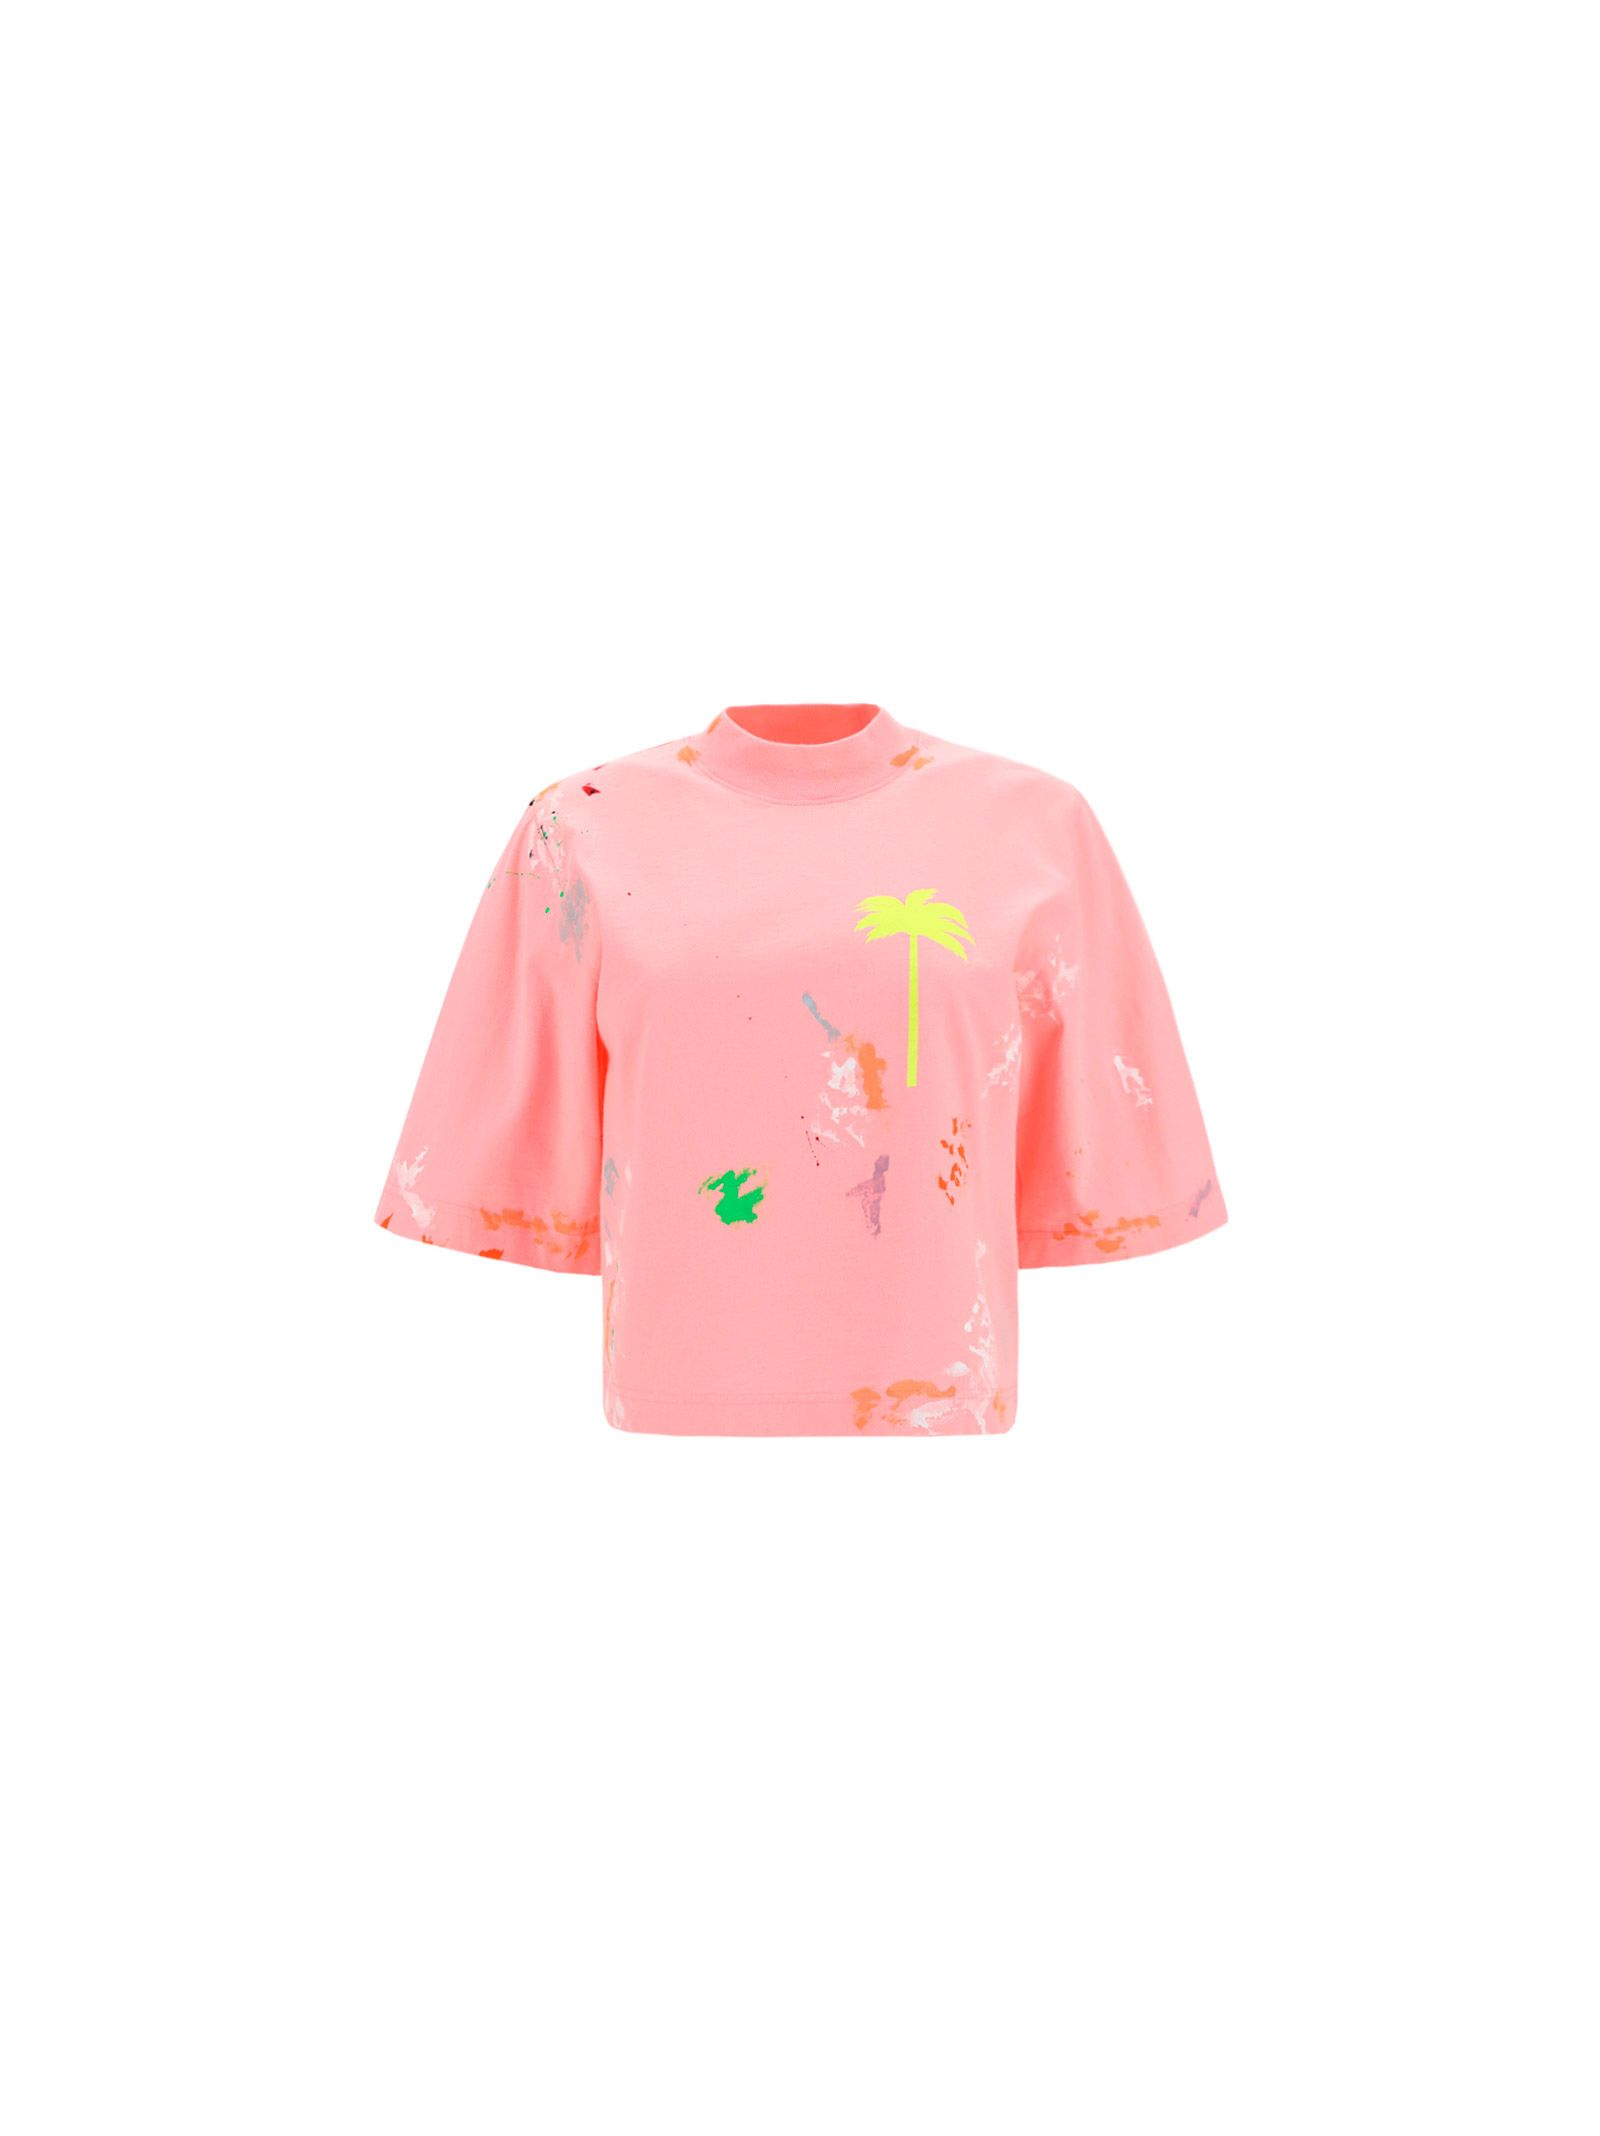 Palm Angels Cottons PALM ANGELS WOMEN'S PWAA020S21JER0043465 PINK OTHER MATERIALS T-SHIRT